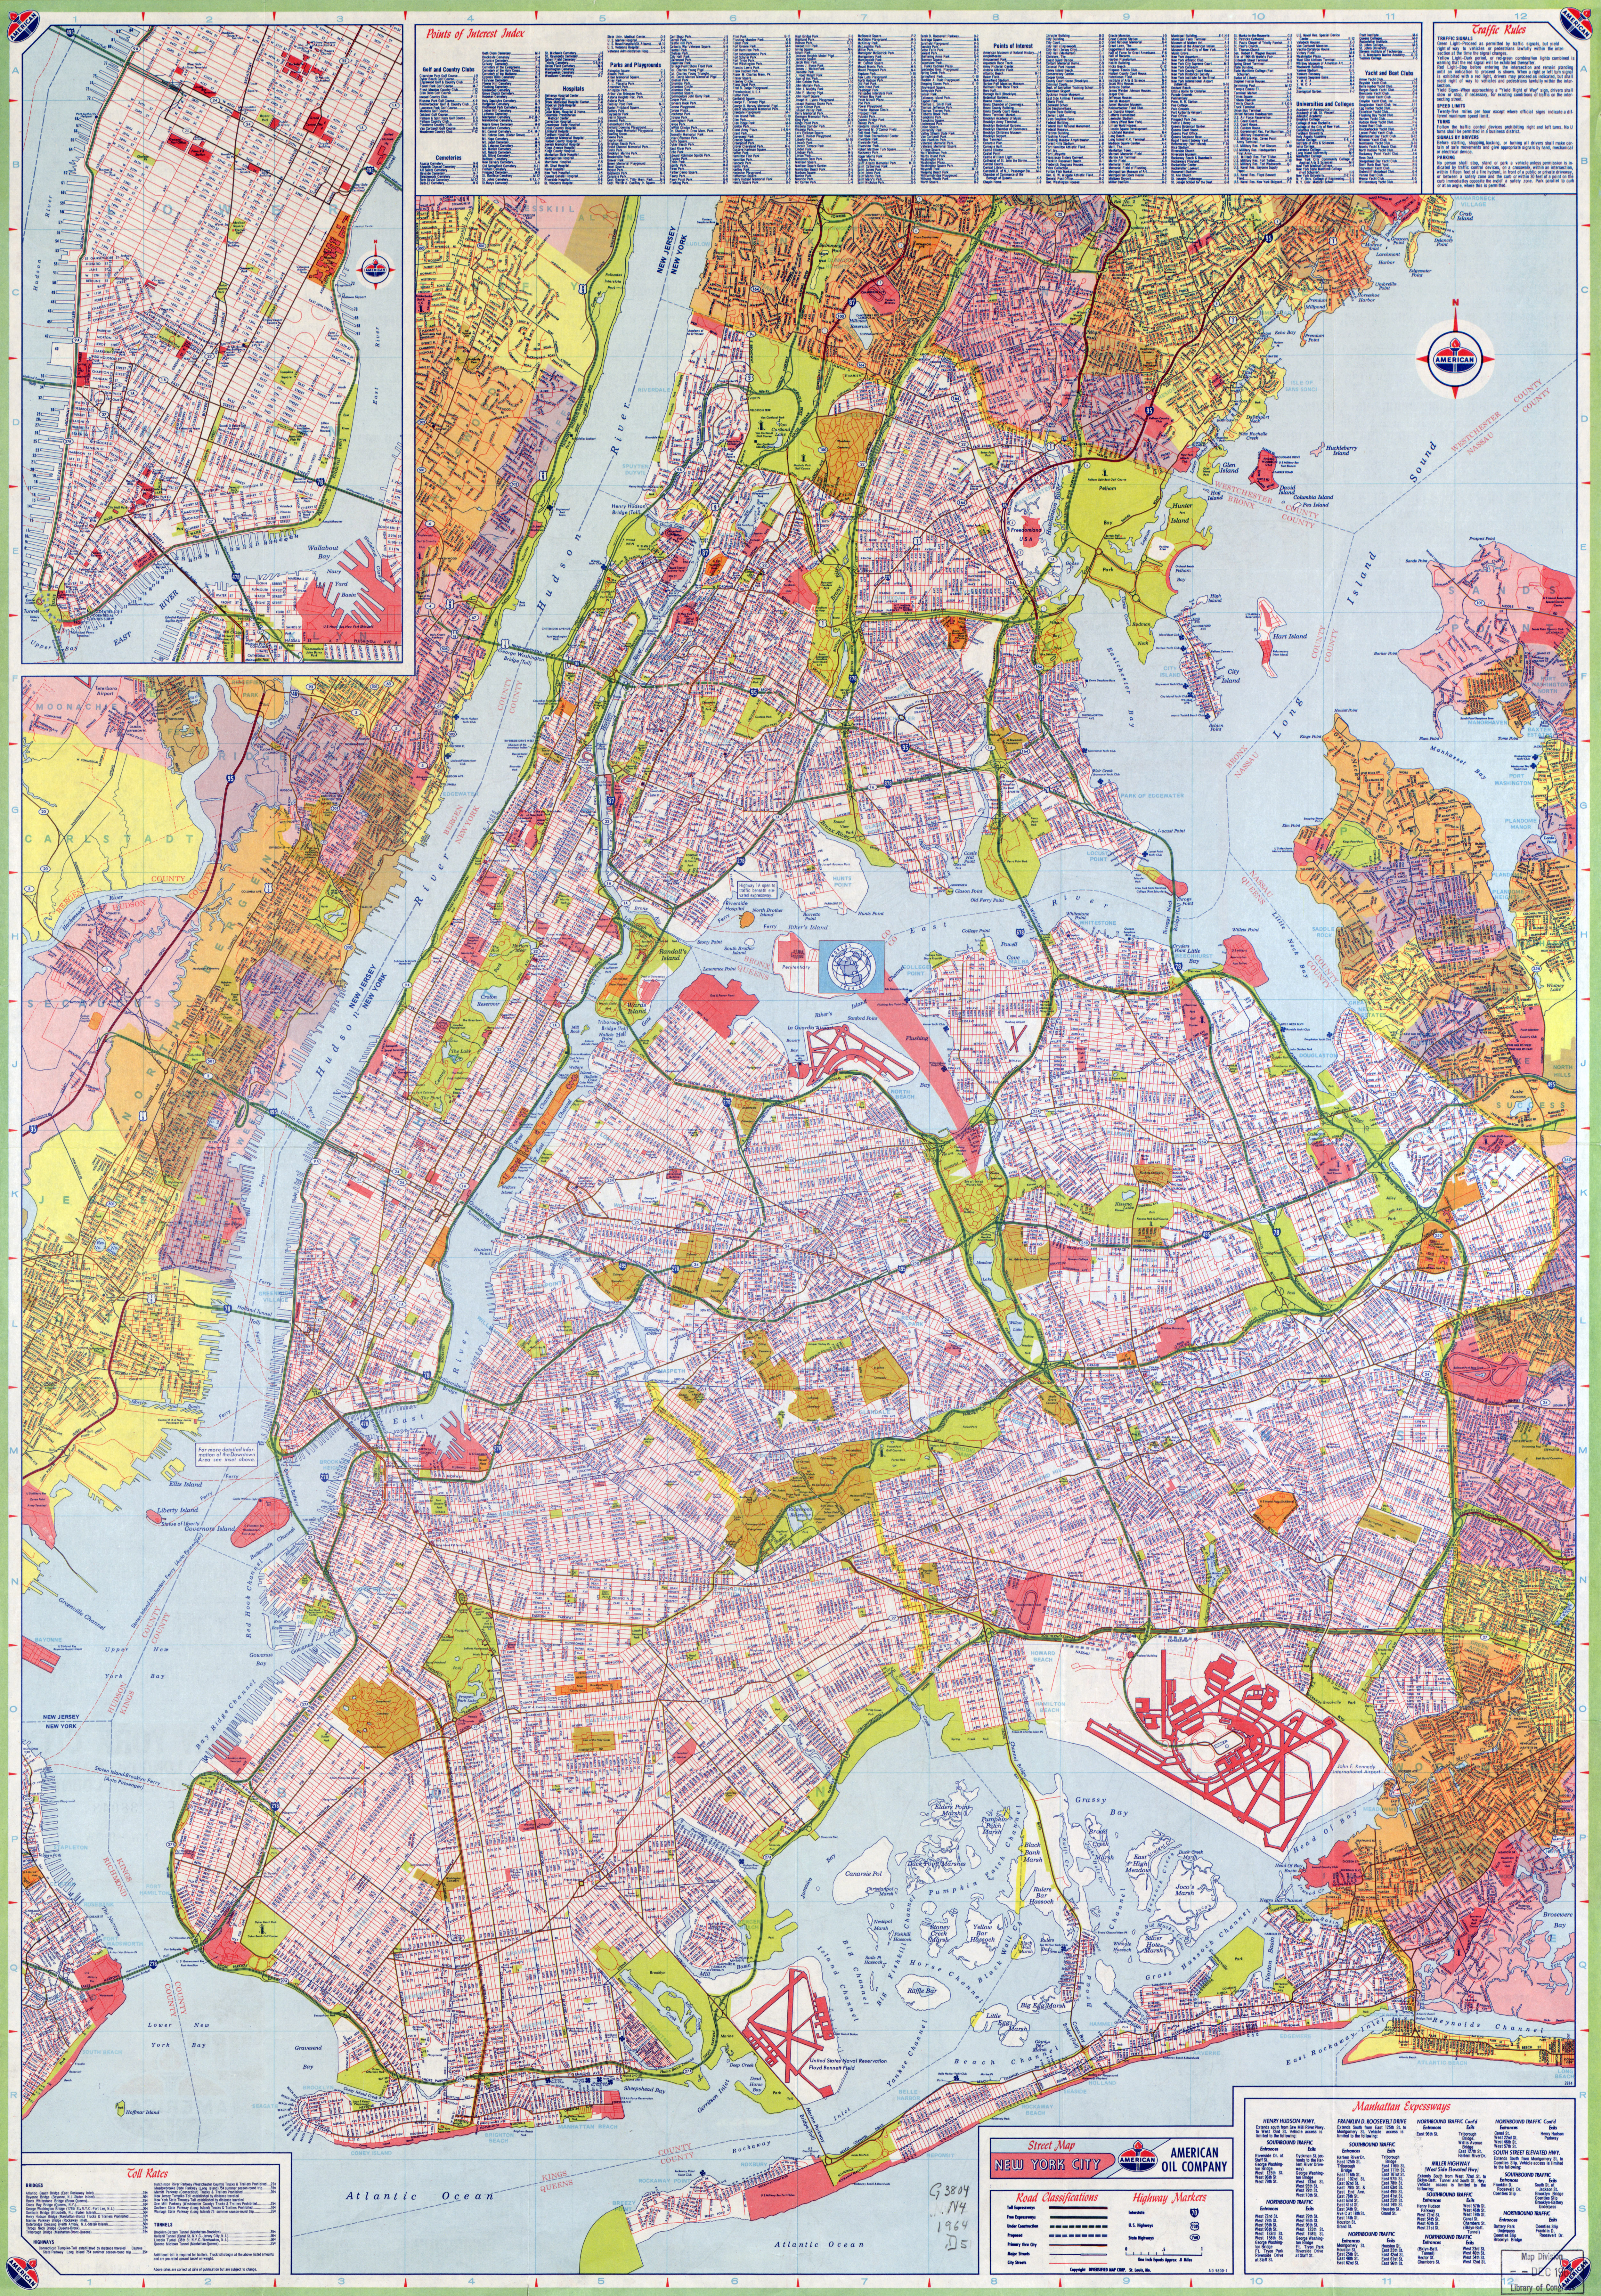 Large Scale Road Map Of New York City With Street Names NYmap - Large us road map poster